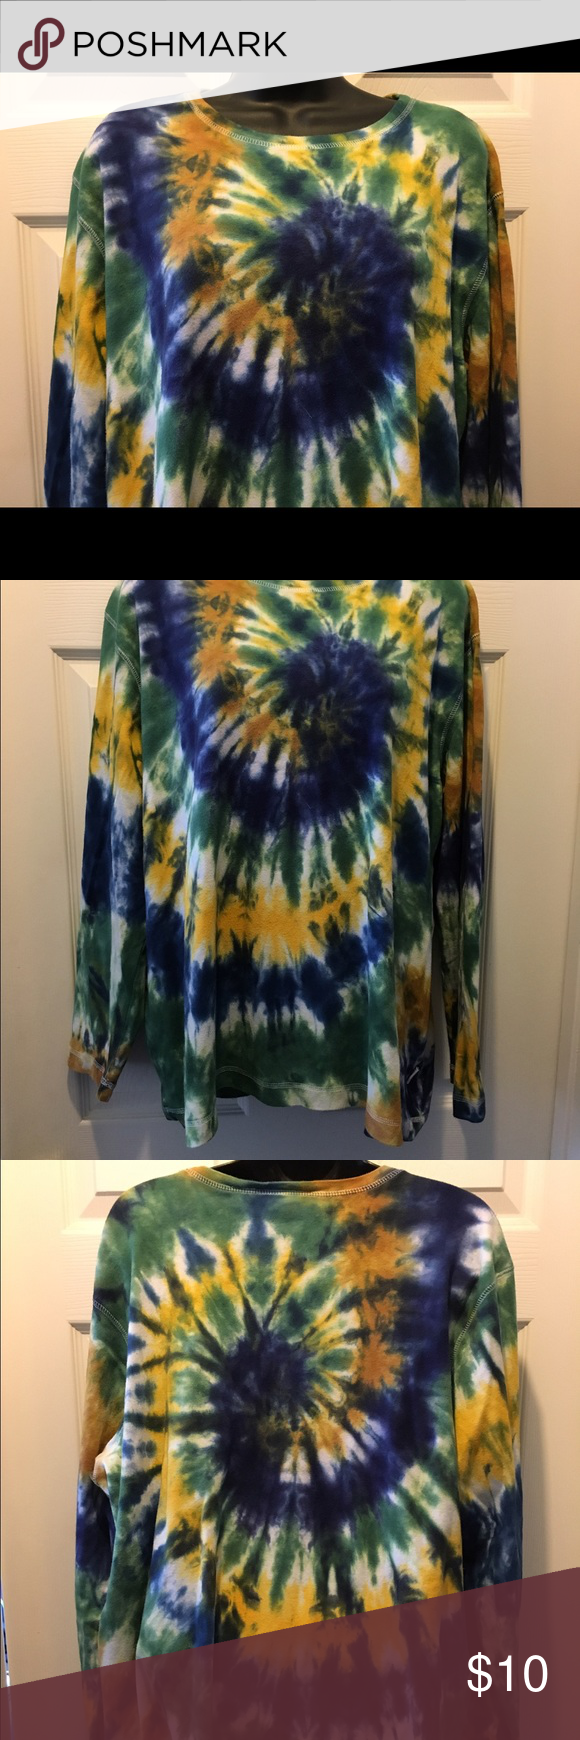 Long Sleeve Tie-Dye Liz Claiborne Top I made a plain white top more fun and tie-dyed it. It is in good condition Liz Claiborne Tops Tees - Long Sleeve